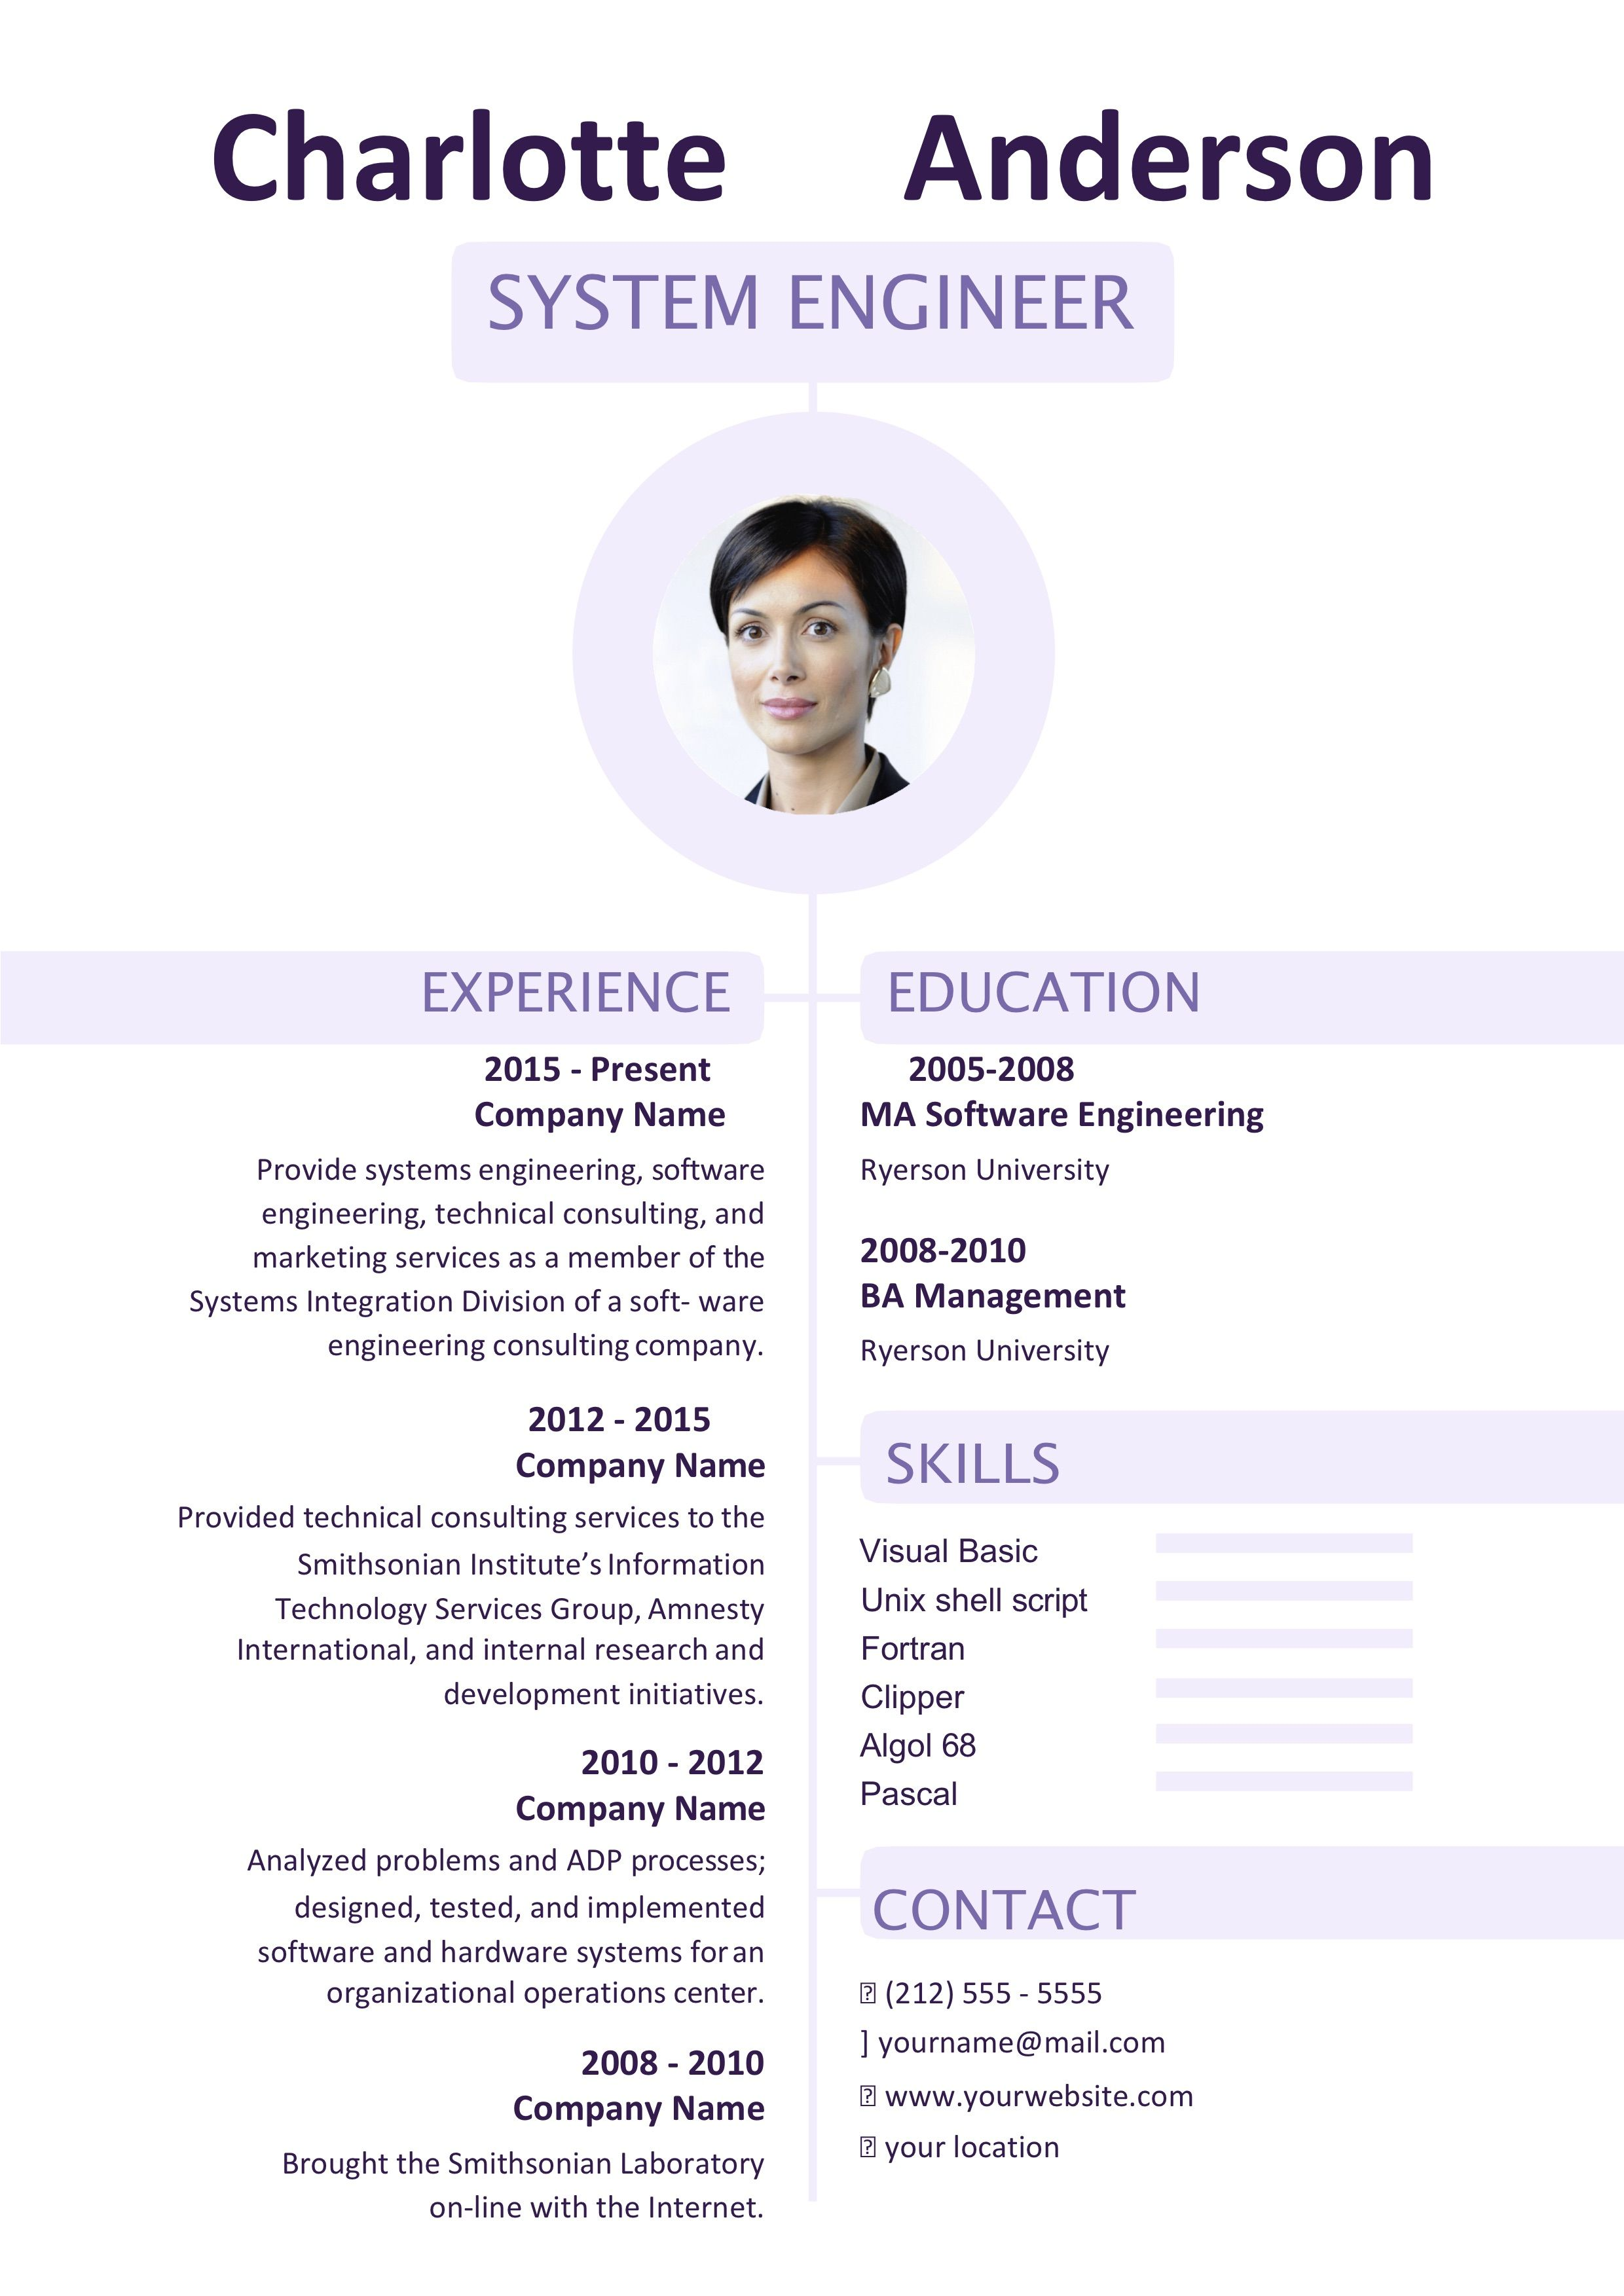 Free ms word resume templates resume templates words